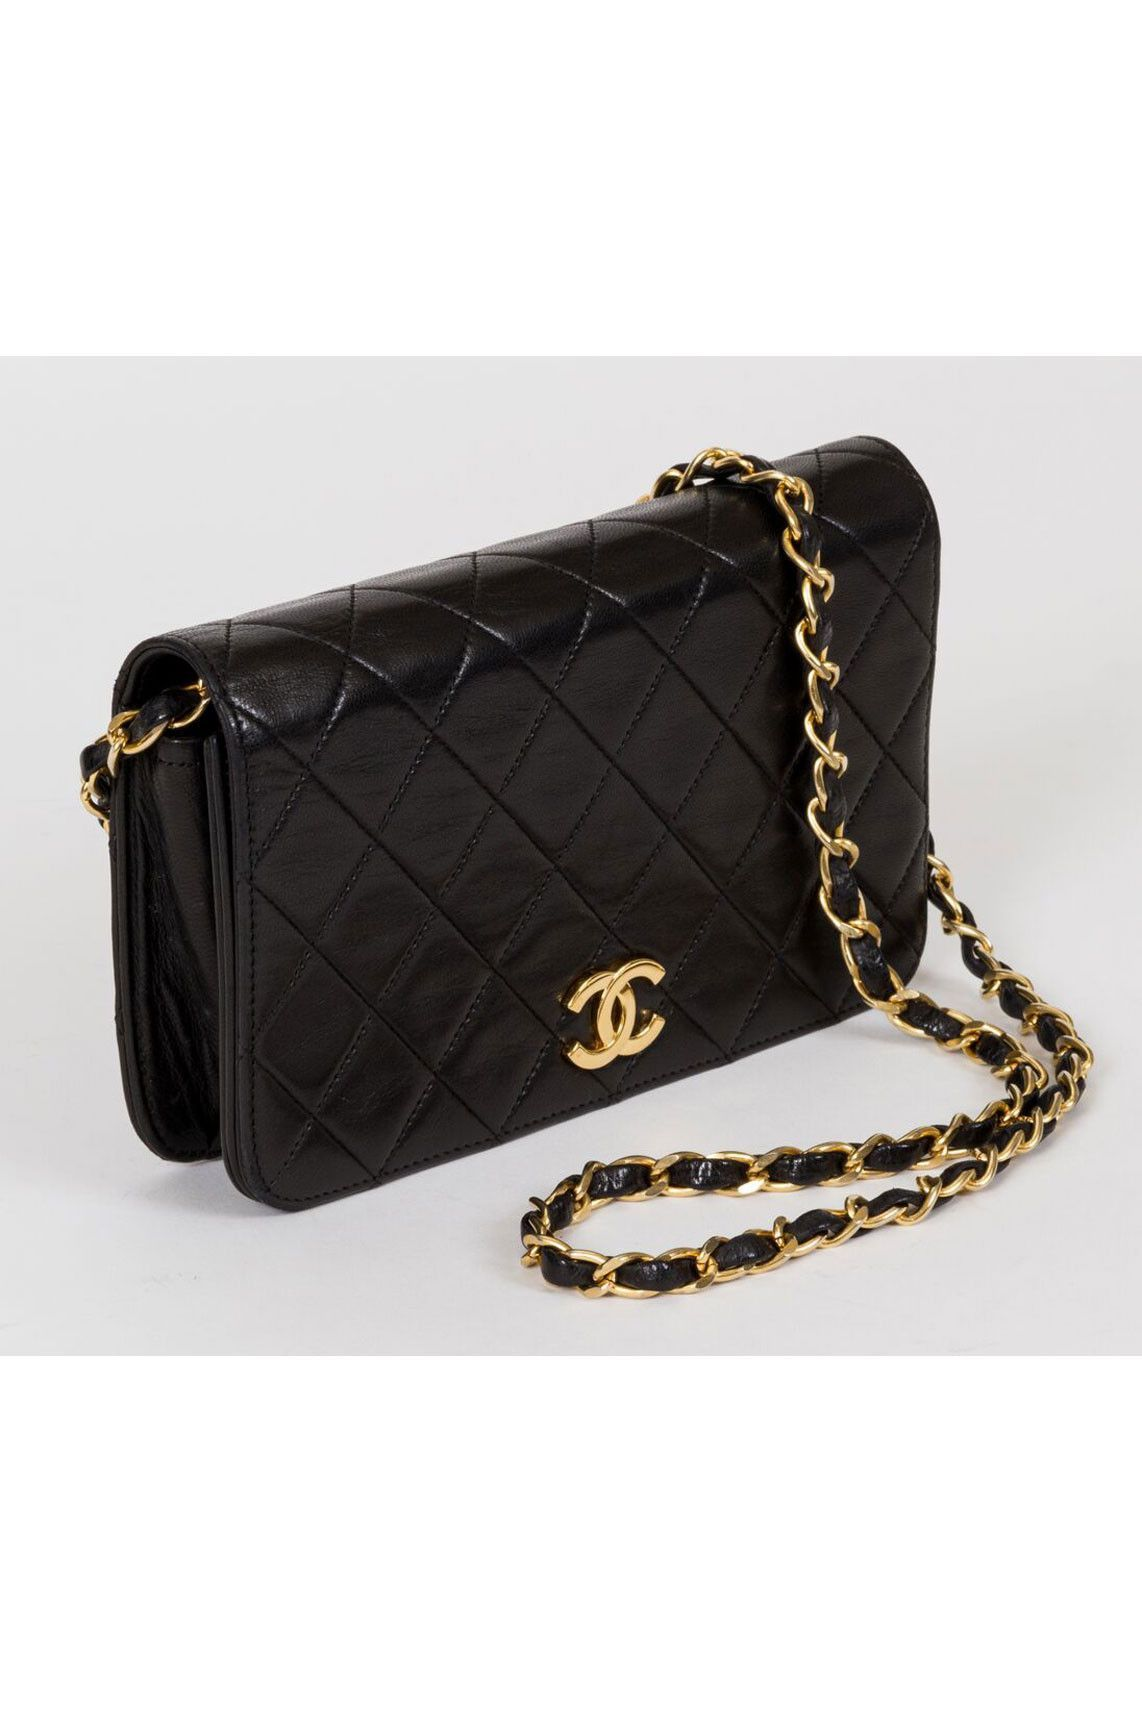 b53ba1f6cd24 Chanel Vintage Two Way Black Shoulder Bag | Gotta have it! | Vintage ...